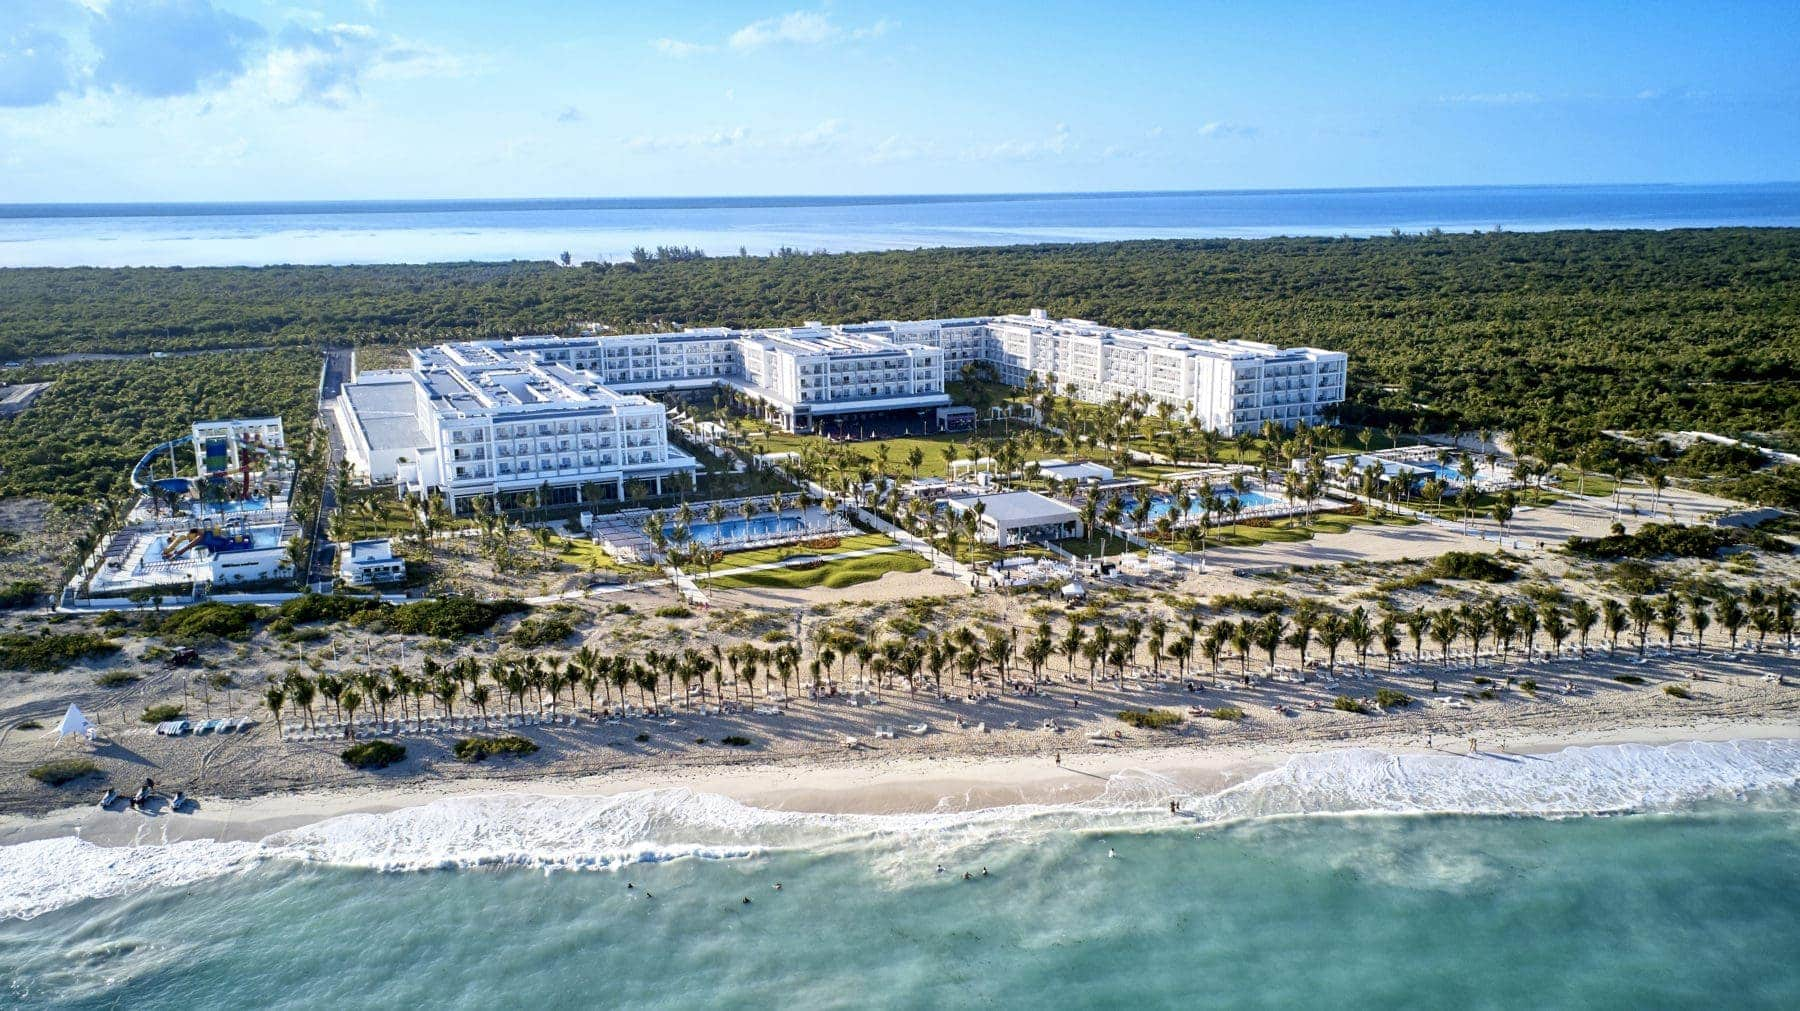 Welcome to Hotel Riu Dunamar: A Place of Rejuvenation and Relaxation